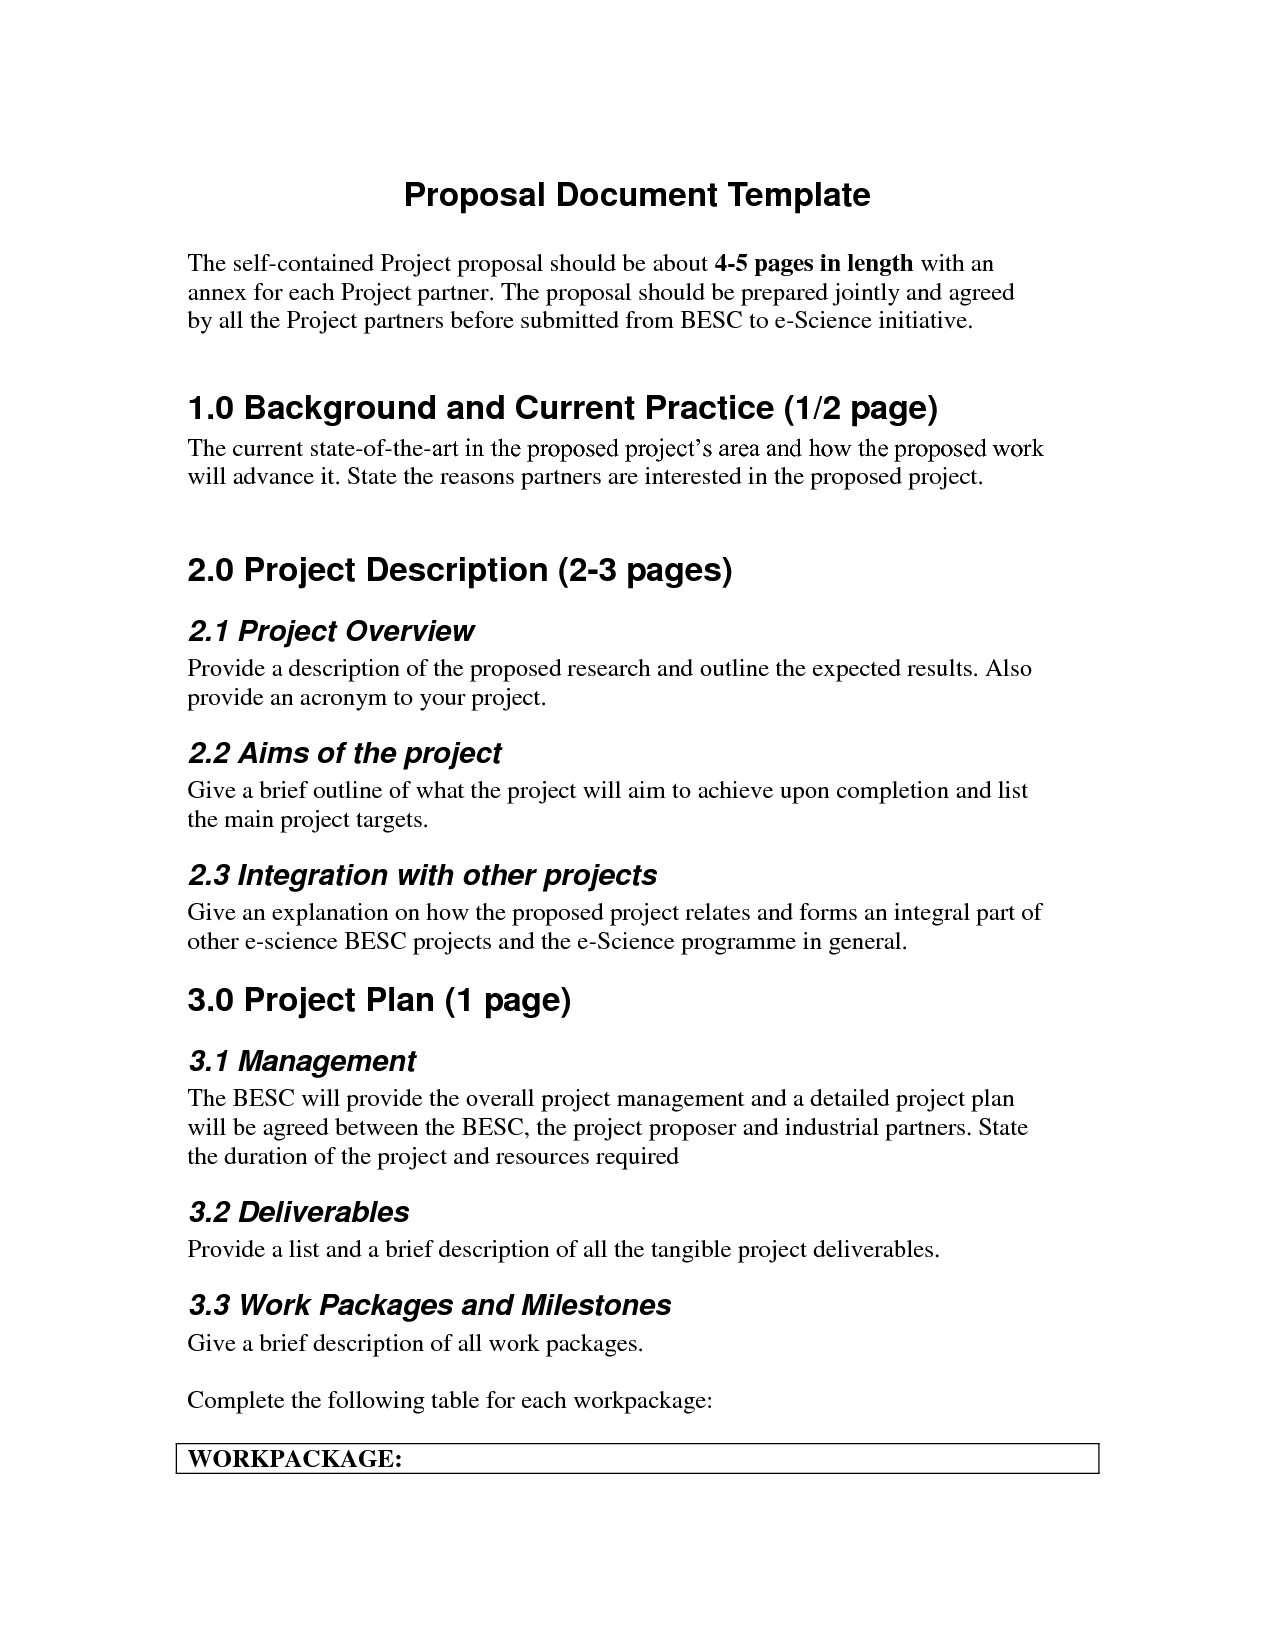 Essay Writing Examples For High School Essay Proposal Template Proposal Essay Topics Before Students Write A  College Research Paper How To Write An Application Essay For High School also Synthesis Essay Topics Essay Proposal Template Proposal Essay Topics Before Students  Comparison Contrast Essay Example Paper